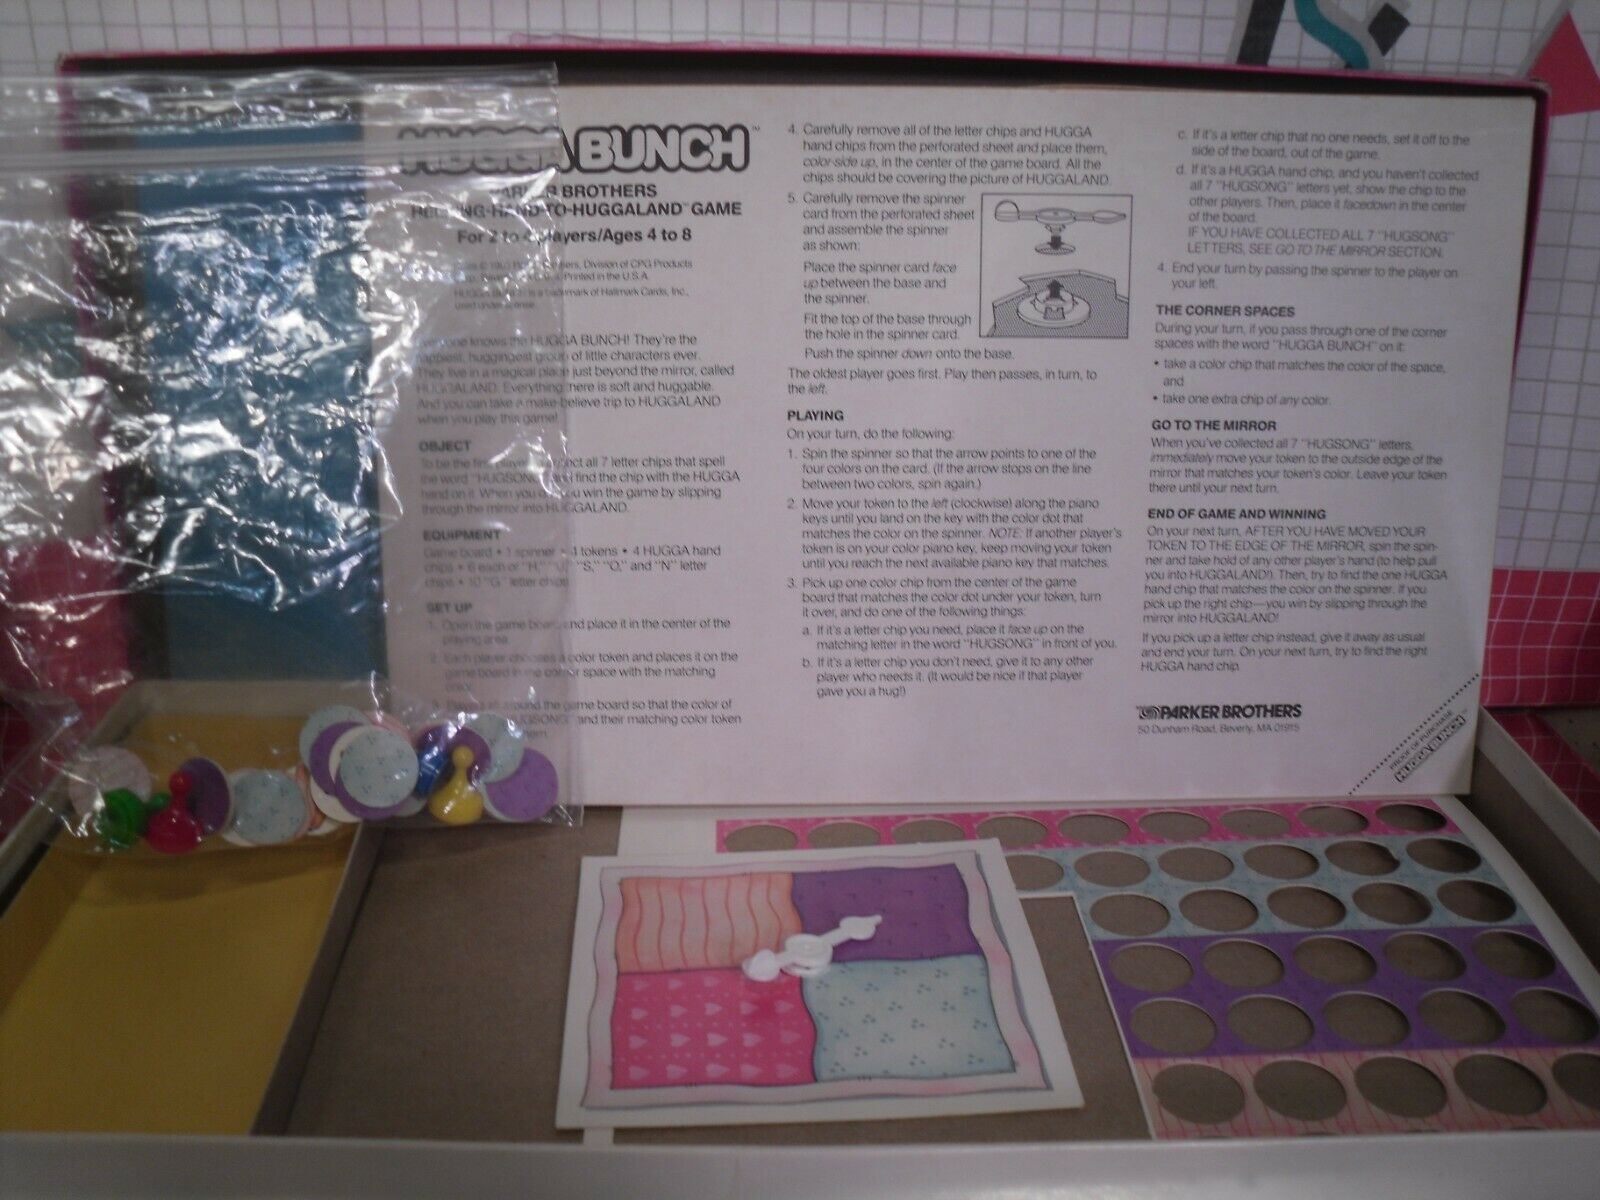 Hugga Bunch Board Game by Parker Brothers 1980s image 8